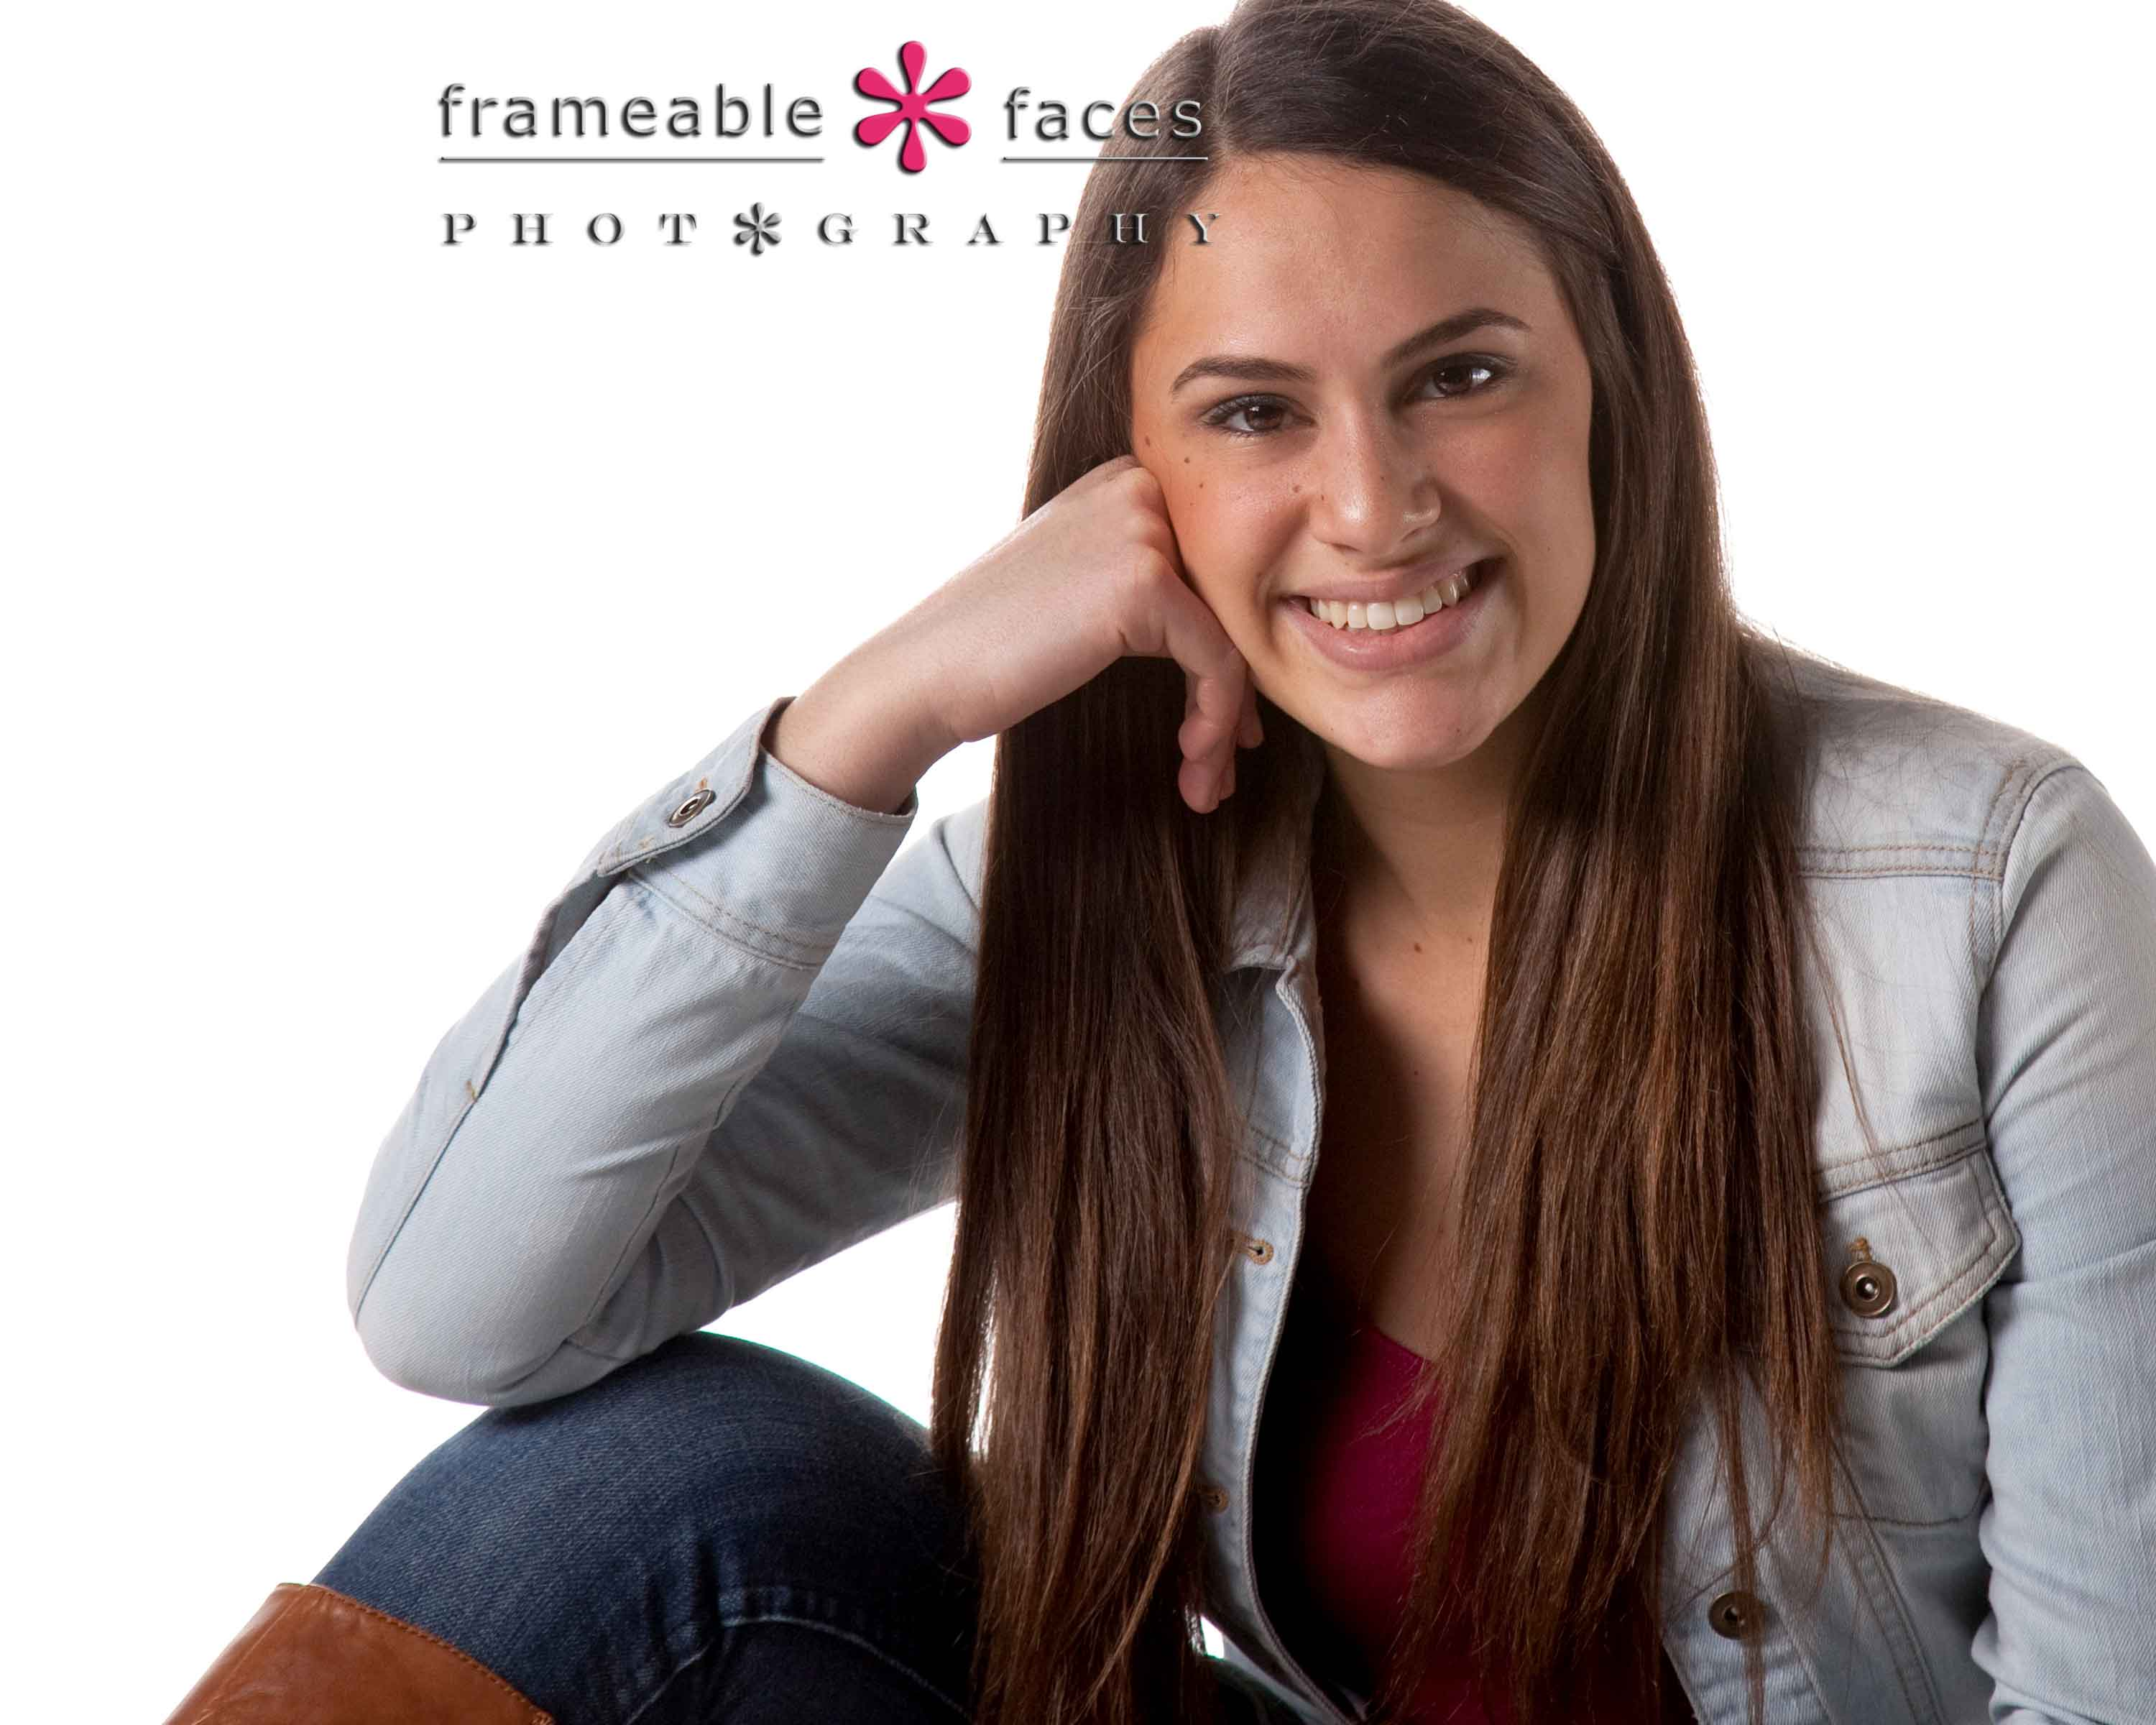 Frameable Faces Spokesmodel Class of 2014